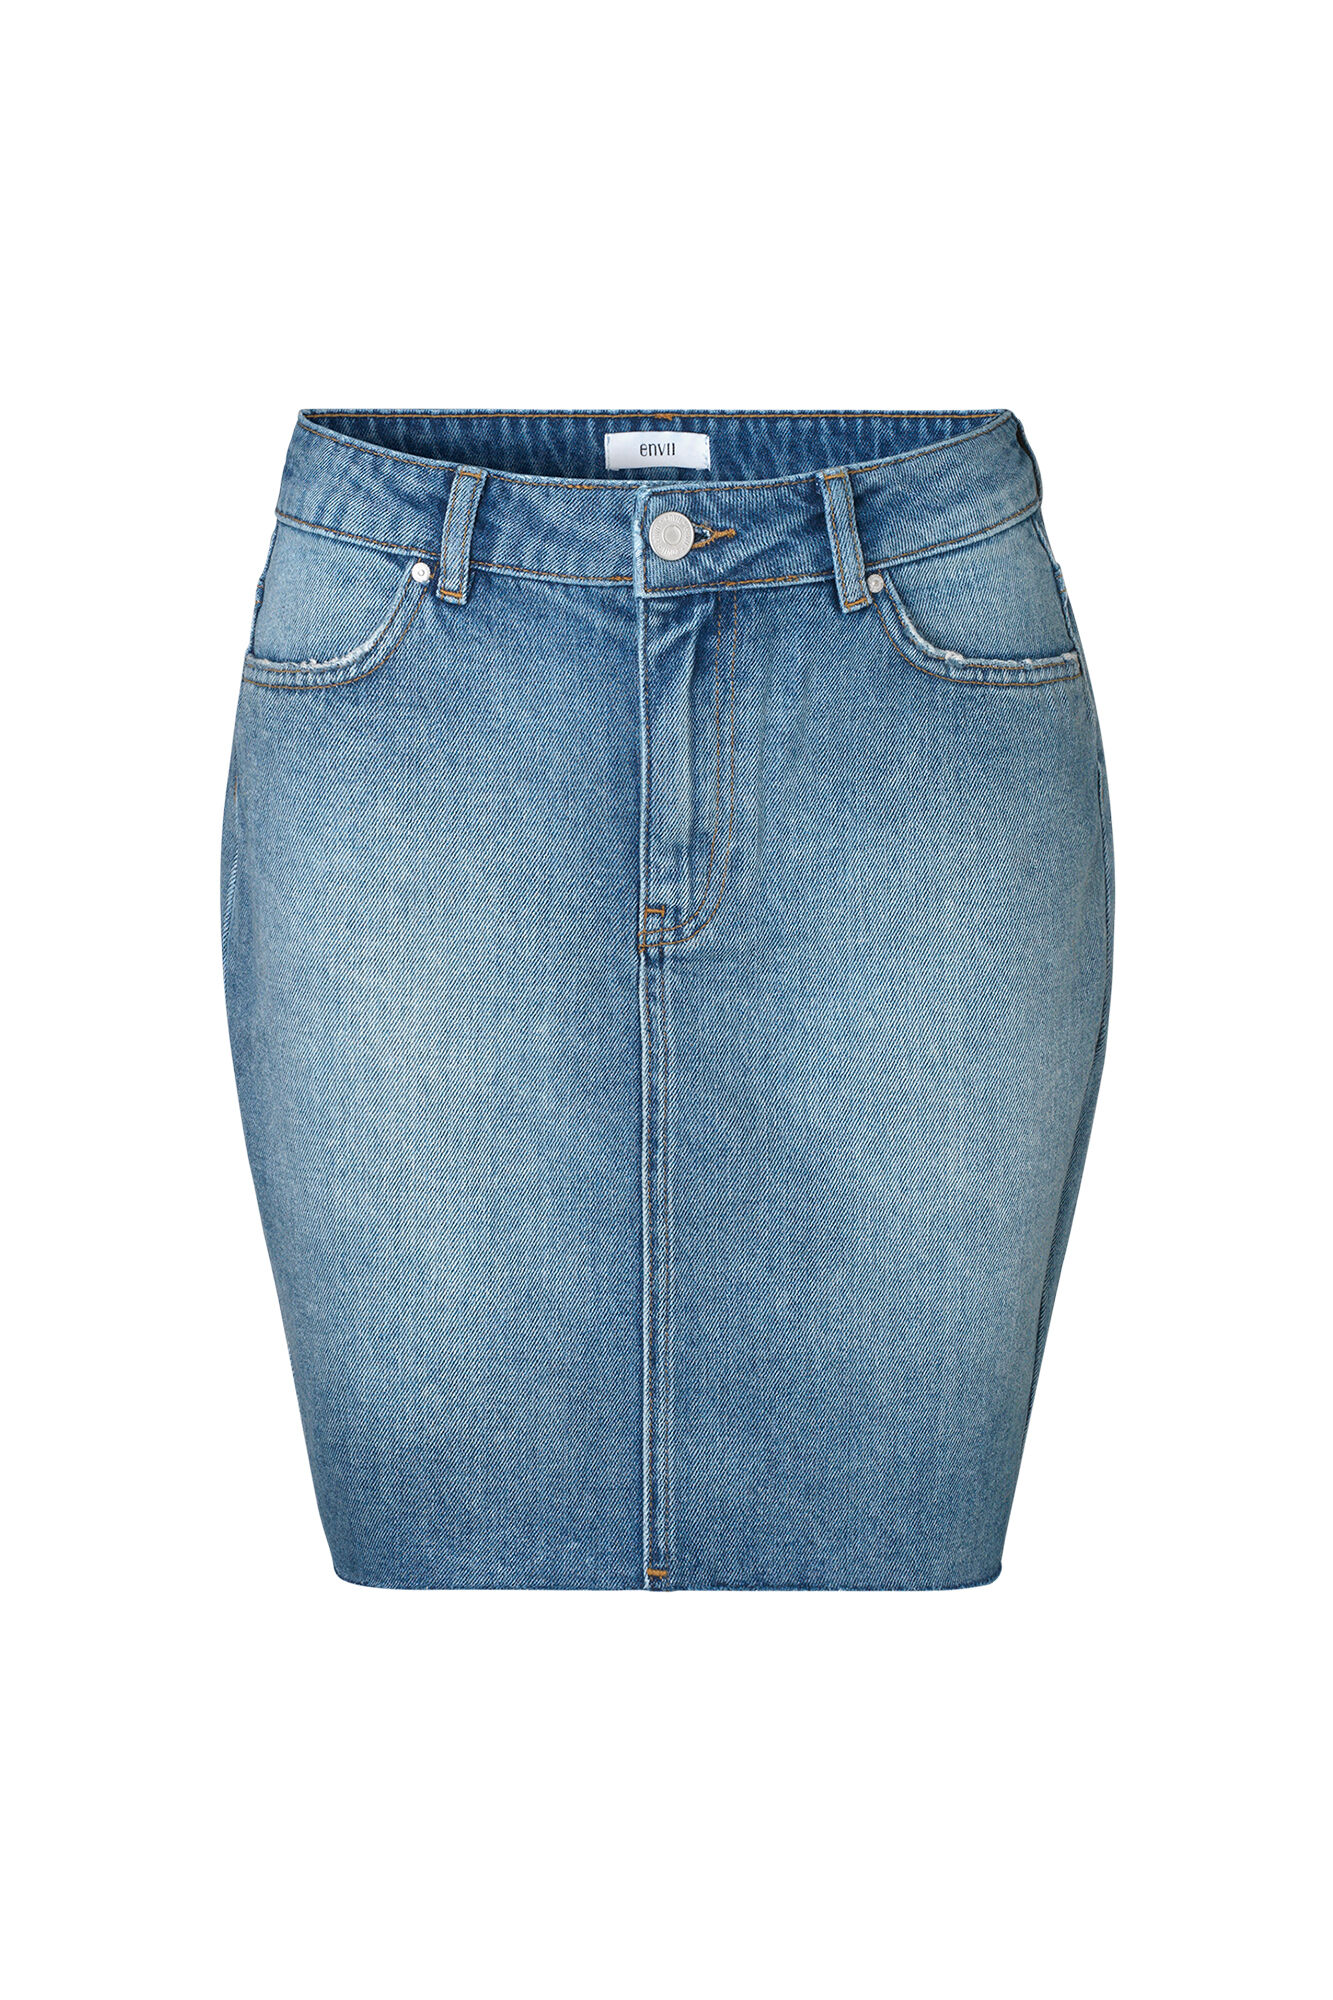 ENSETTLER DENIM SKIRT 6463, WORN BLUE